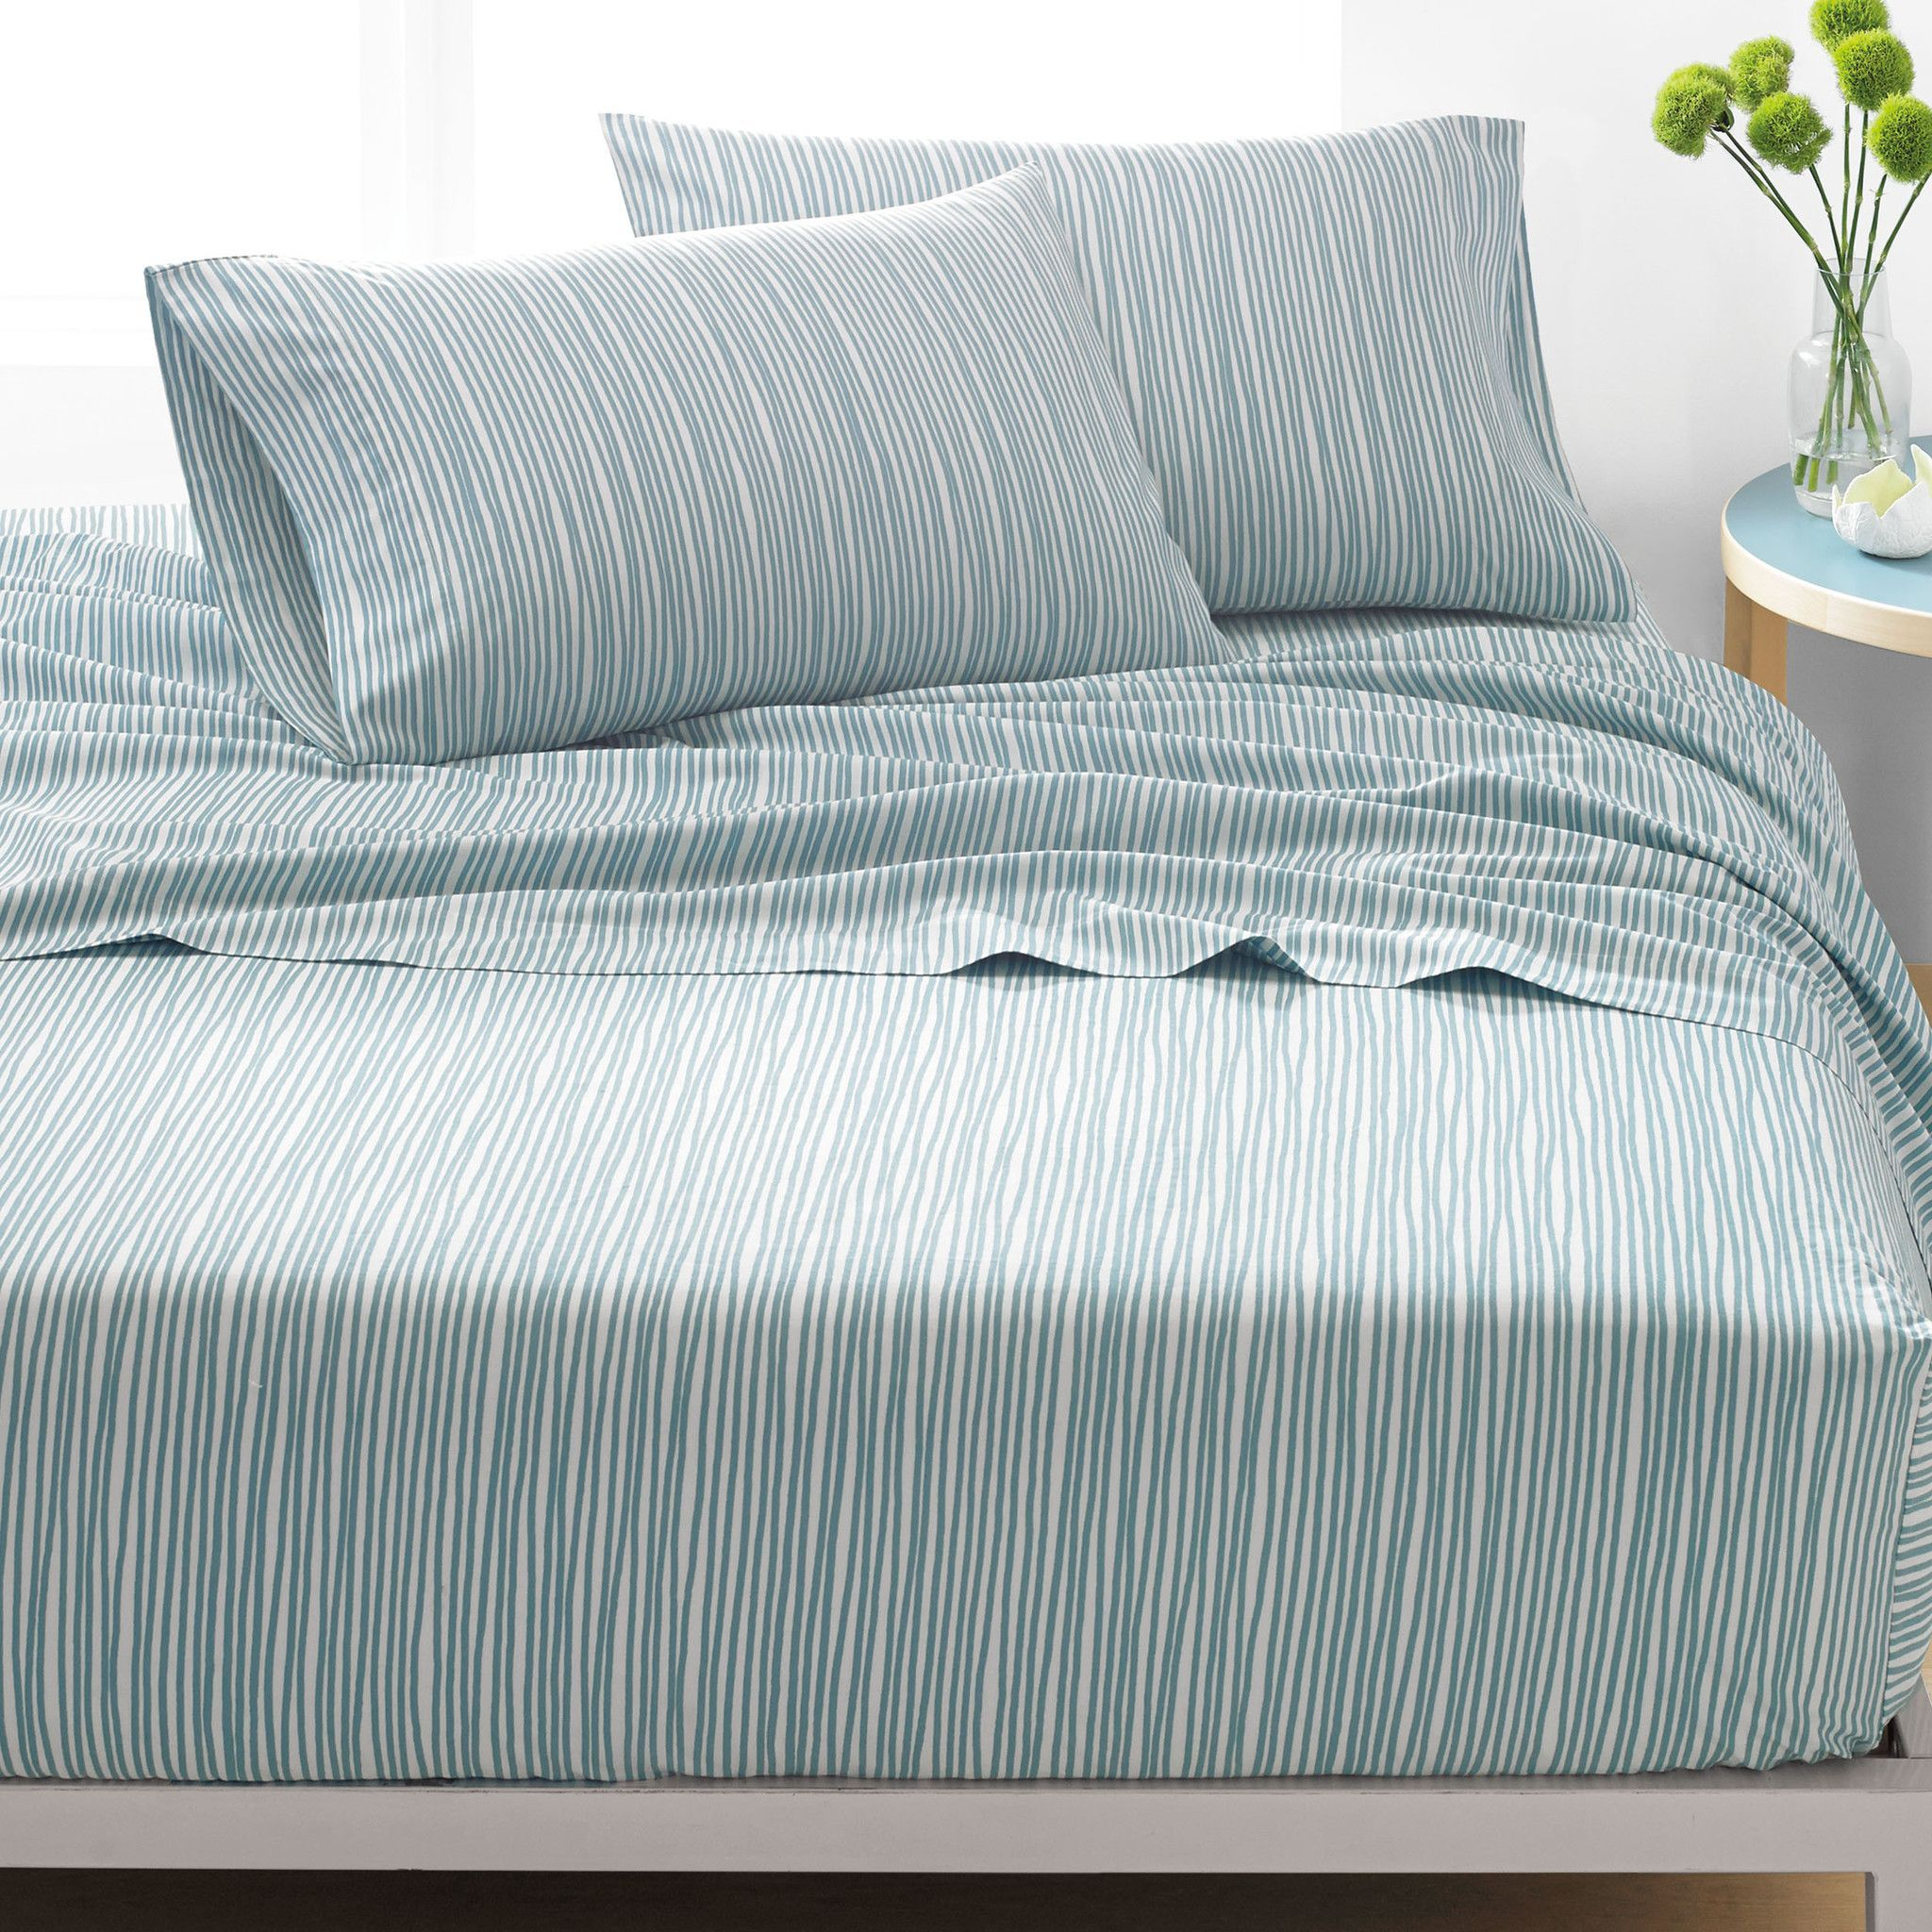 marimekko bedding beautiful with excellent remodel bed linens linen about blue fabulous dark